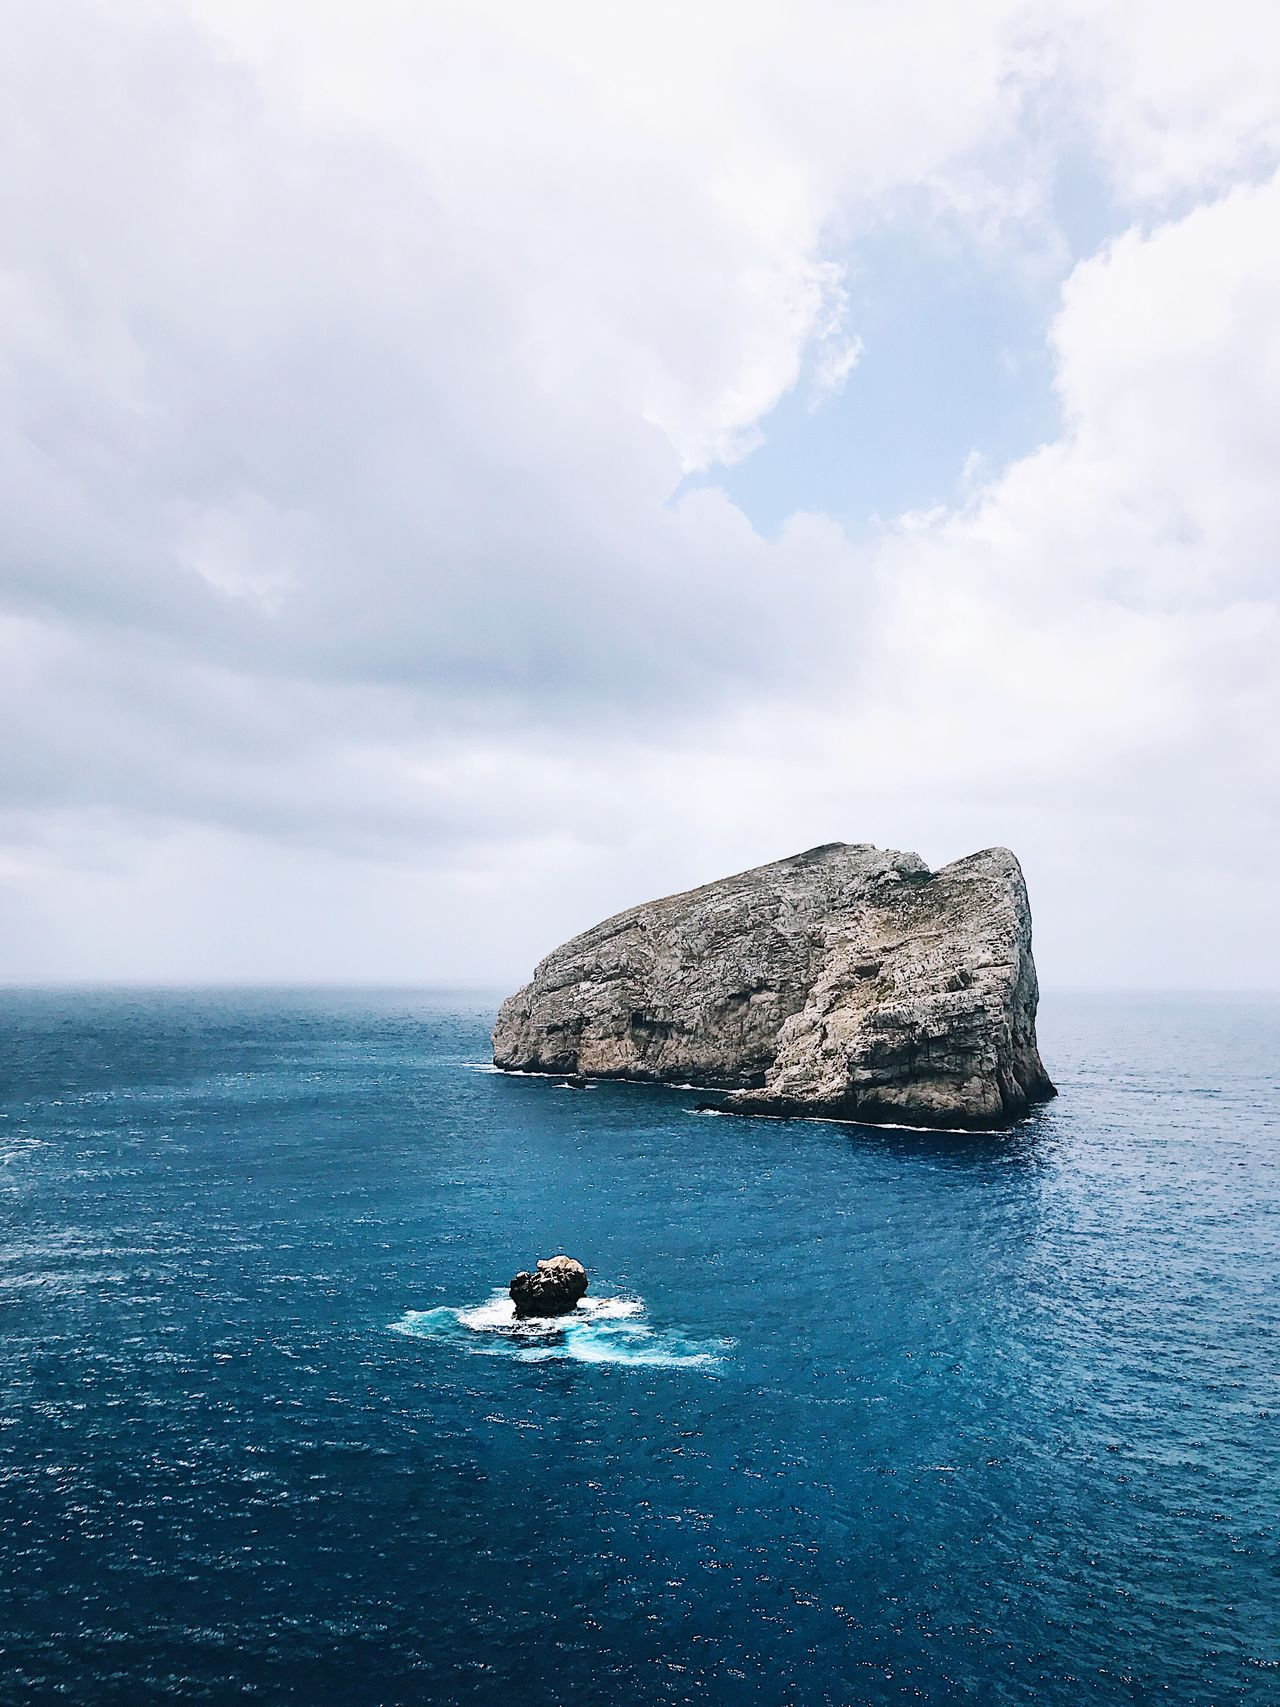 EyeEm Selects Sea Water Sky Nature Rock - Object Beauty In Nature Scenics Tranquility Rock Formation Horizon Over Water Cloud - Sky Tranquil Scene Day Outdoors Cliff No People